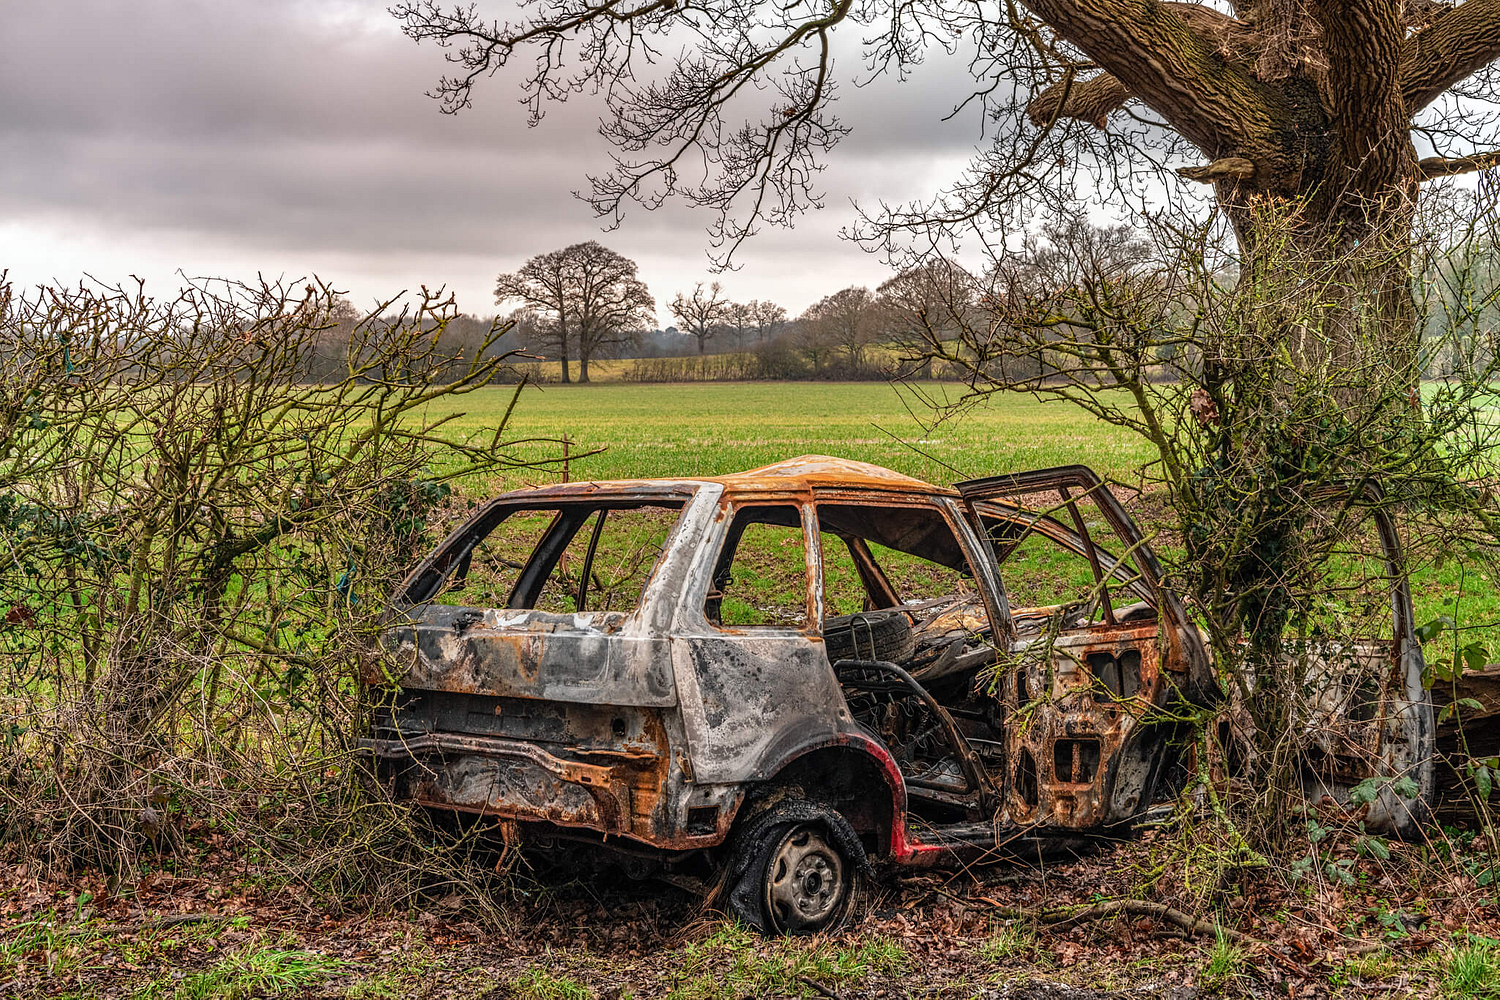 Burnt out car, Surrey countryside